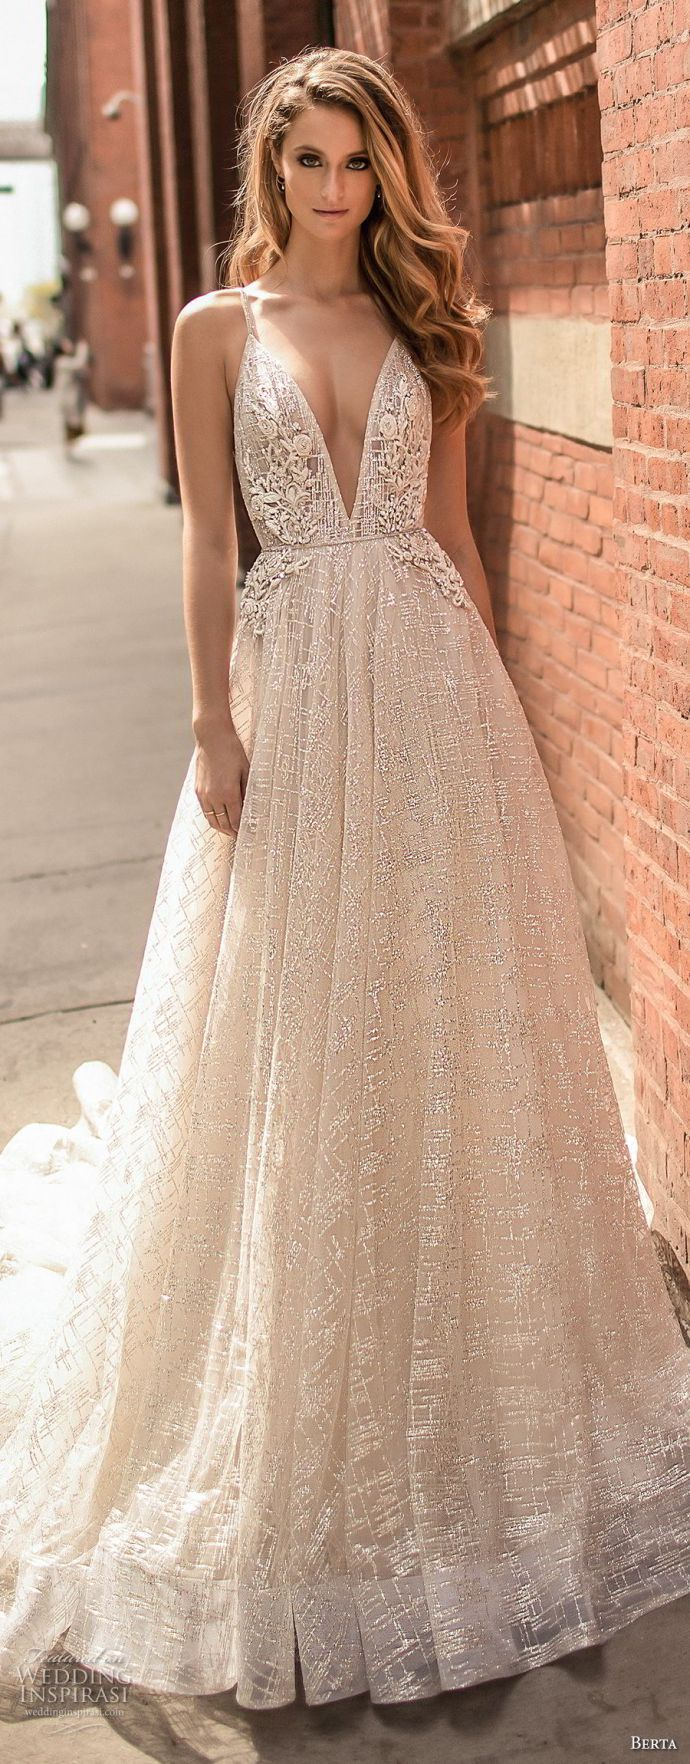 Berta bridal spring wedding dresses part wedding